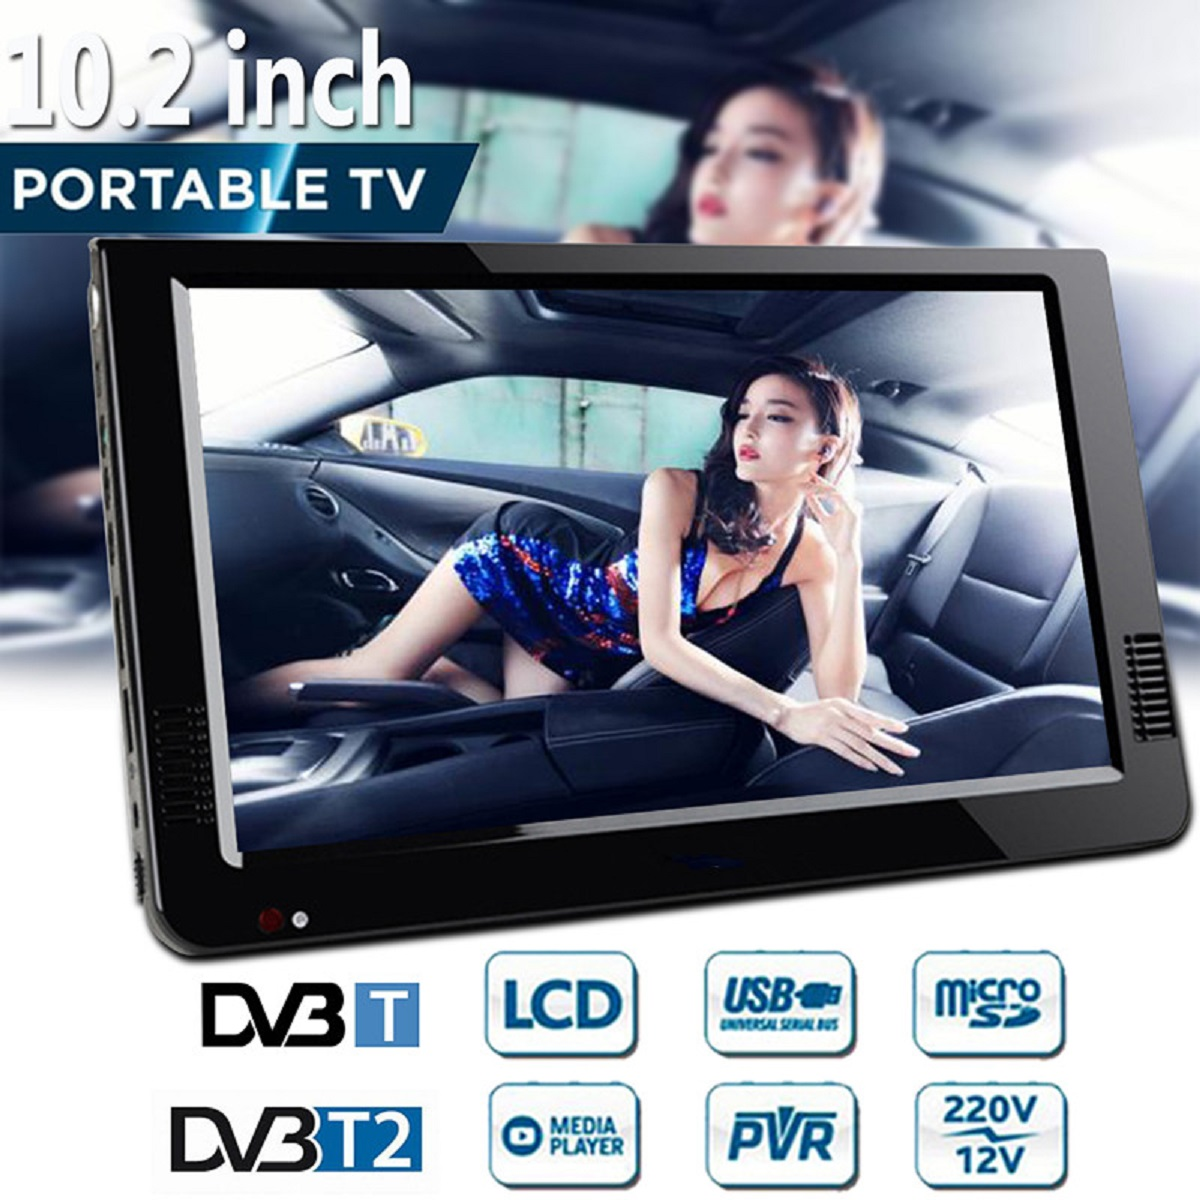 10.2 Inch 12V Outdoor Portable Digital Analog Television DVB-T / DVB-T2 TFT LED HD TV Support TF Card USB Audio Car Television image